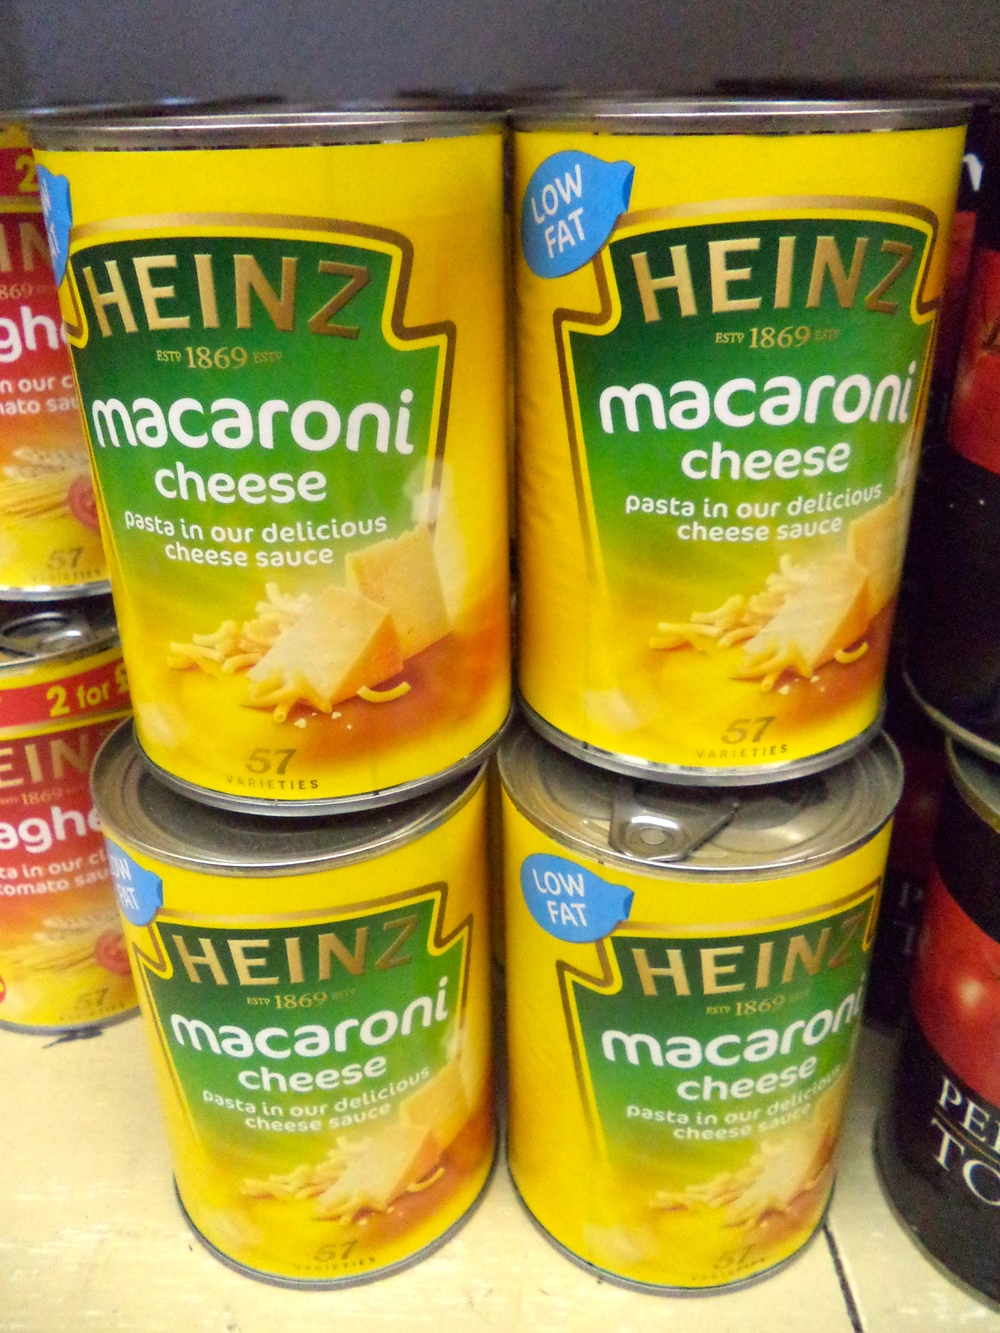 Canned Mac N' Cheese. Why not?